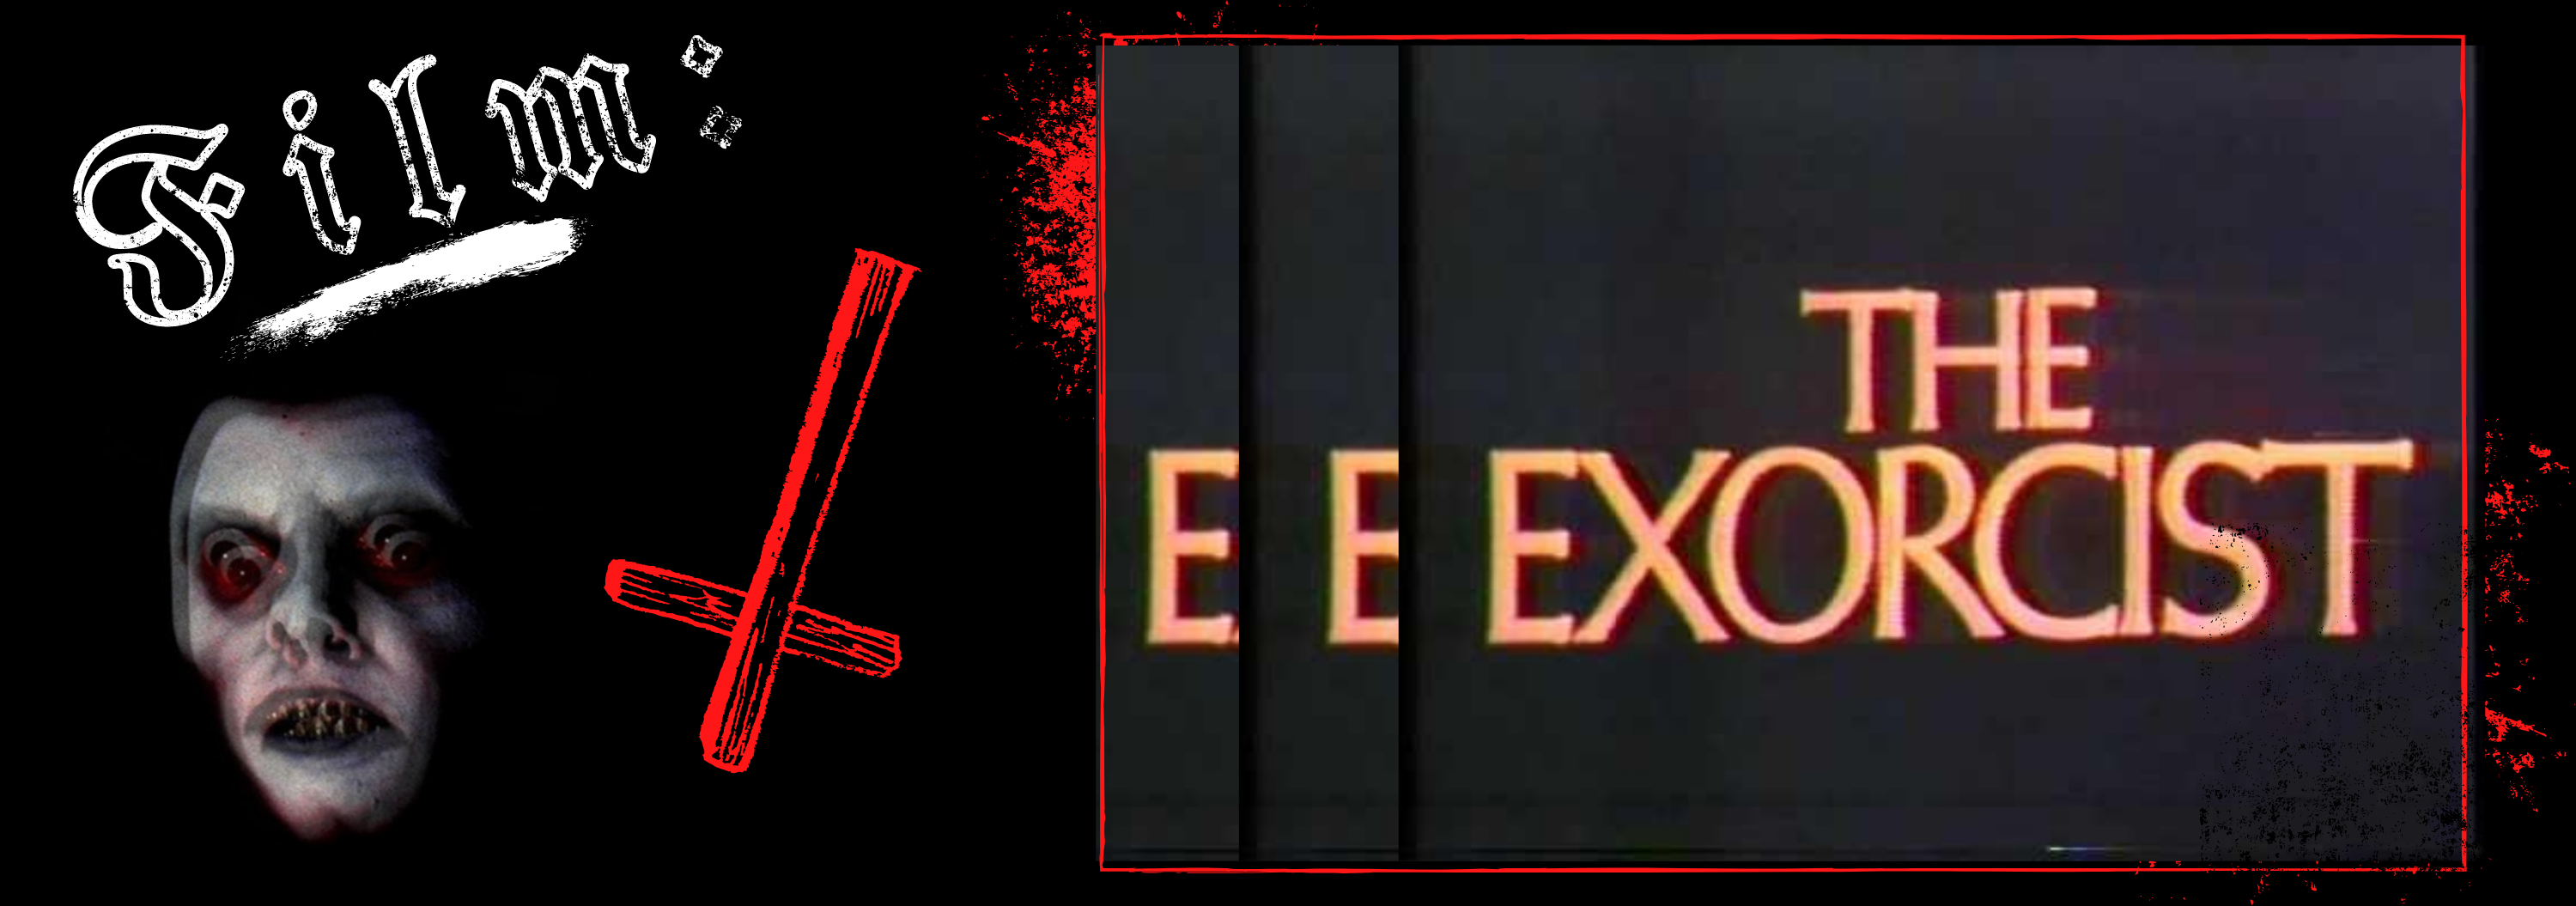 A black, white, and red graphic, featuring a red cross illustration, a screenshot of the demon Pazuzu from the film The Exorcist, and a screenshot from the film The Exorcist.